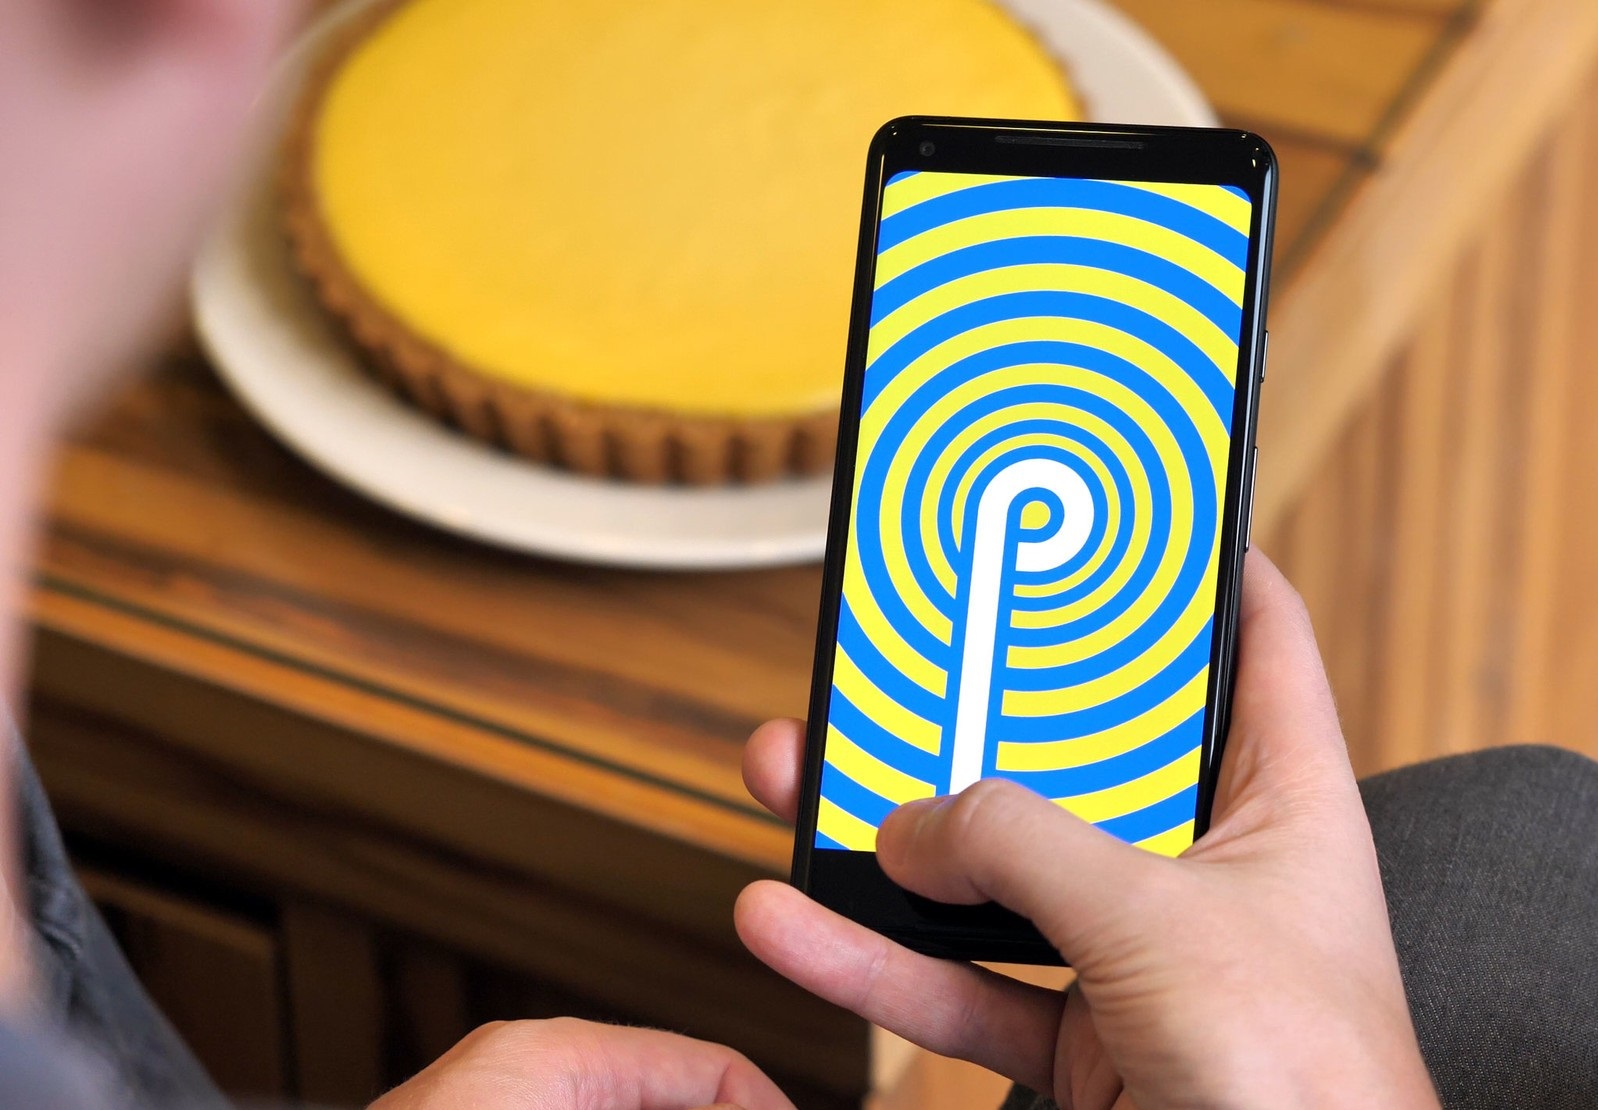 Android 9 Pie: All You Need to Know